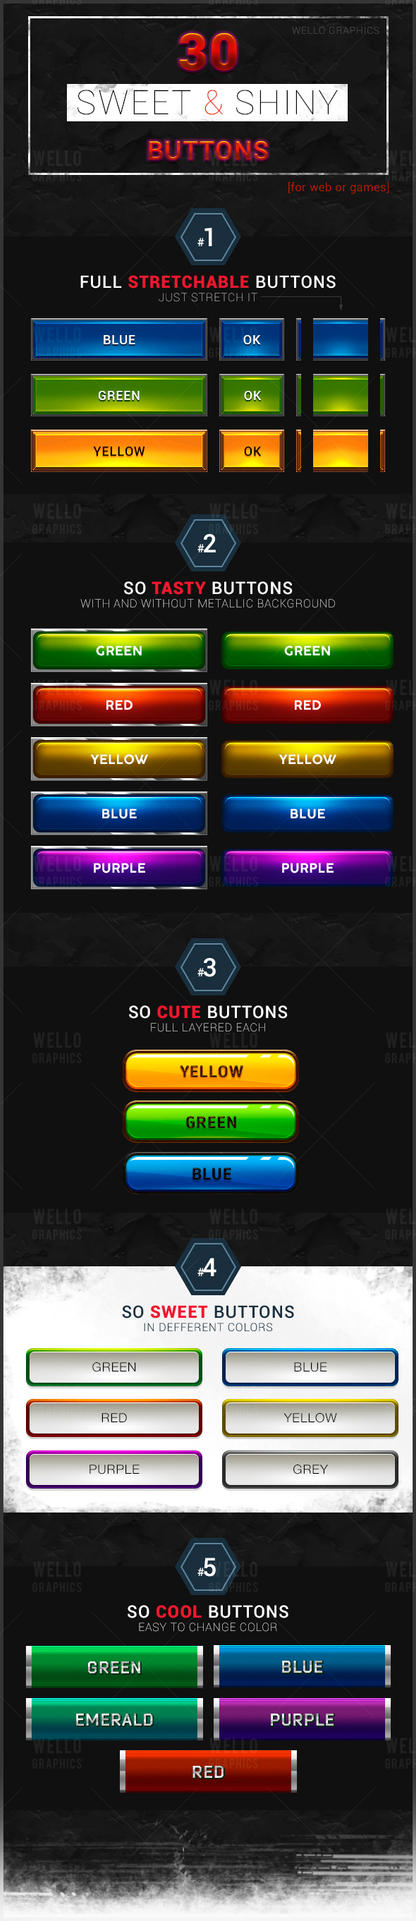 30 SWEET and SHINY BUTTONS pack by Perfomer